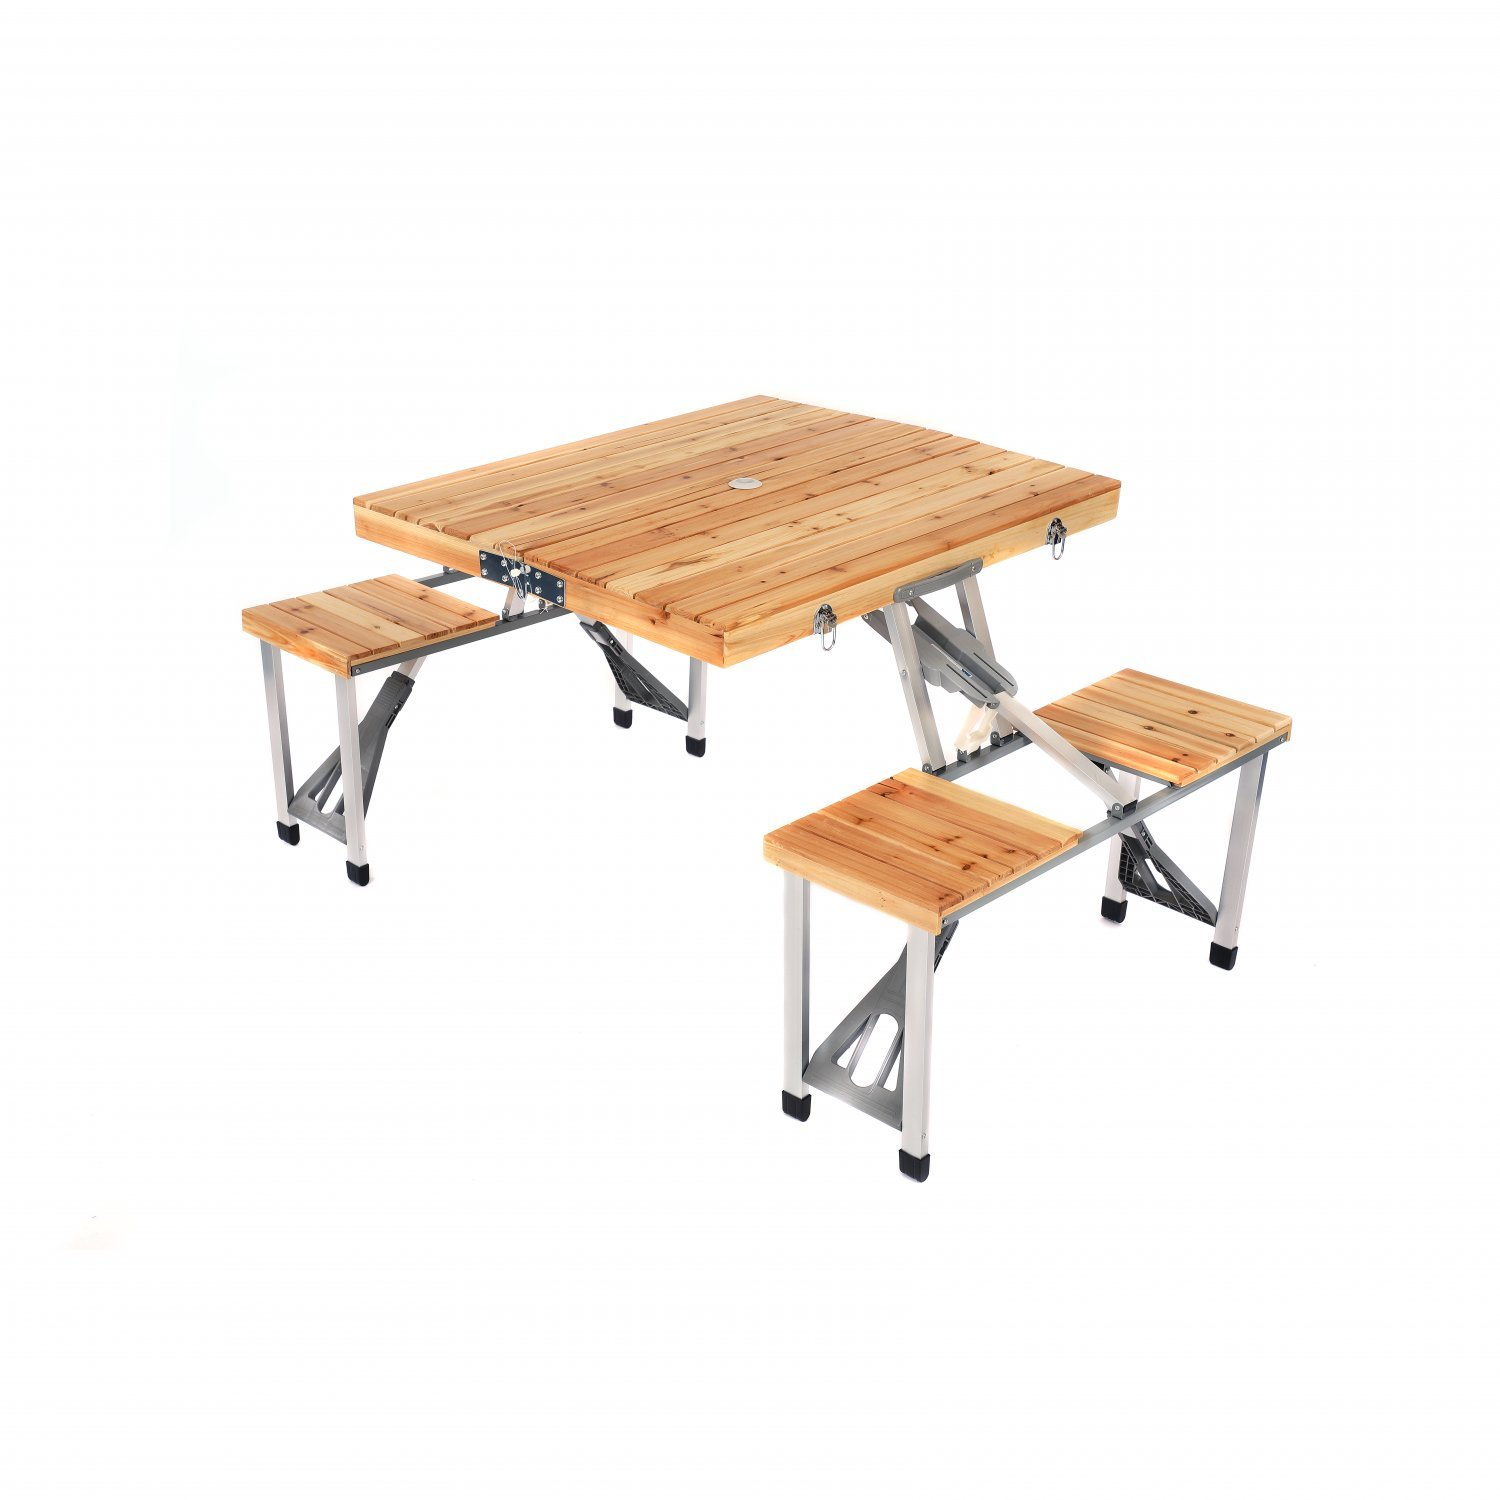 Wooden Folding Outdoor Picnic Table And Bench Set 4 Seats